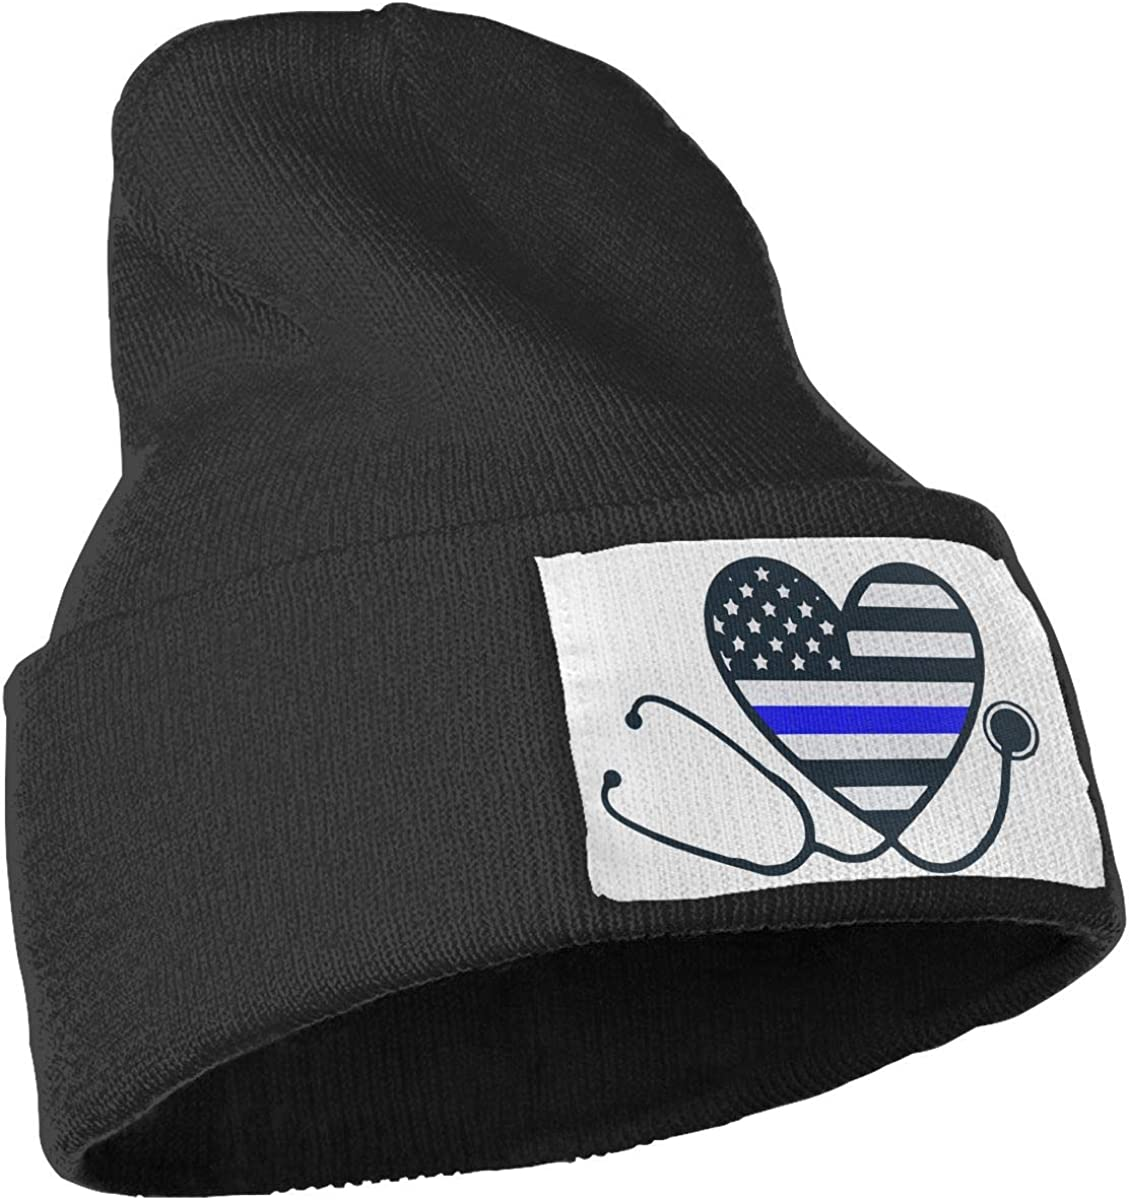 Nurses Police Wife Thin Blue Line Thick Skull Cap WHOO93@Y Mens and Womens 100/% Acrylic Knitting Hat Cap